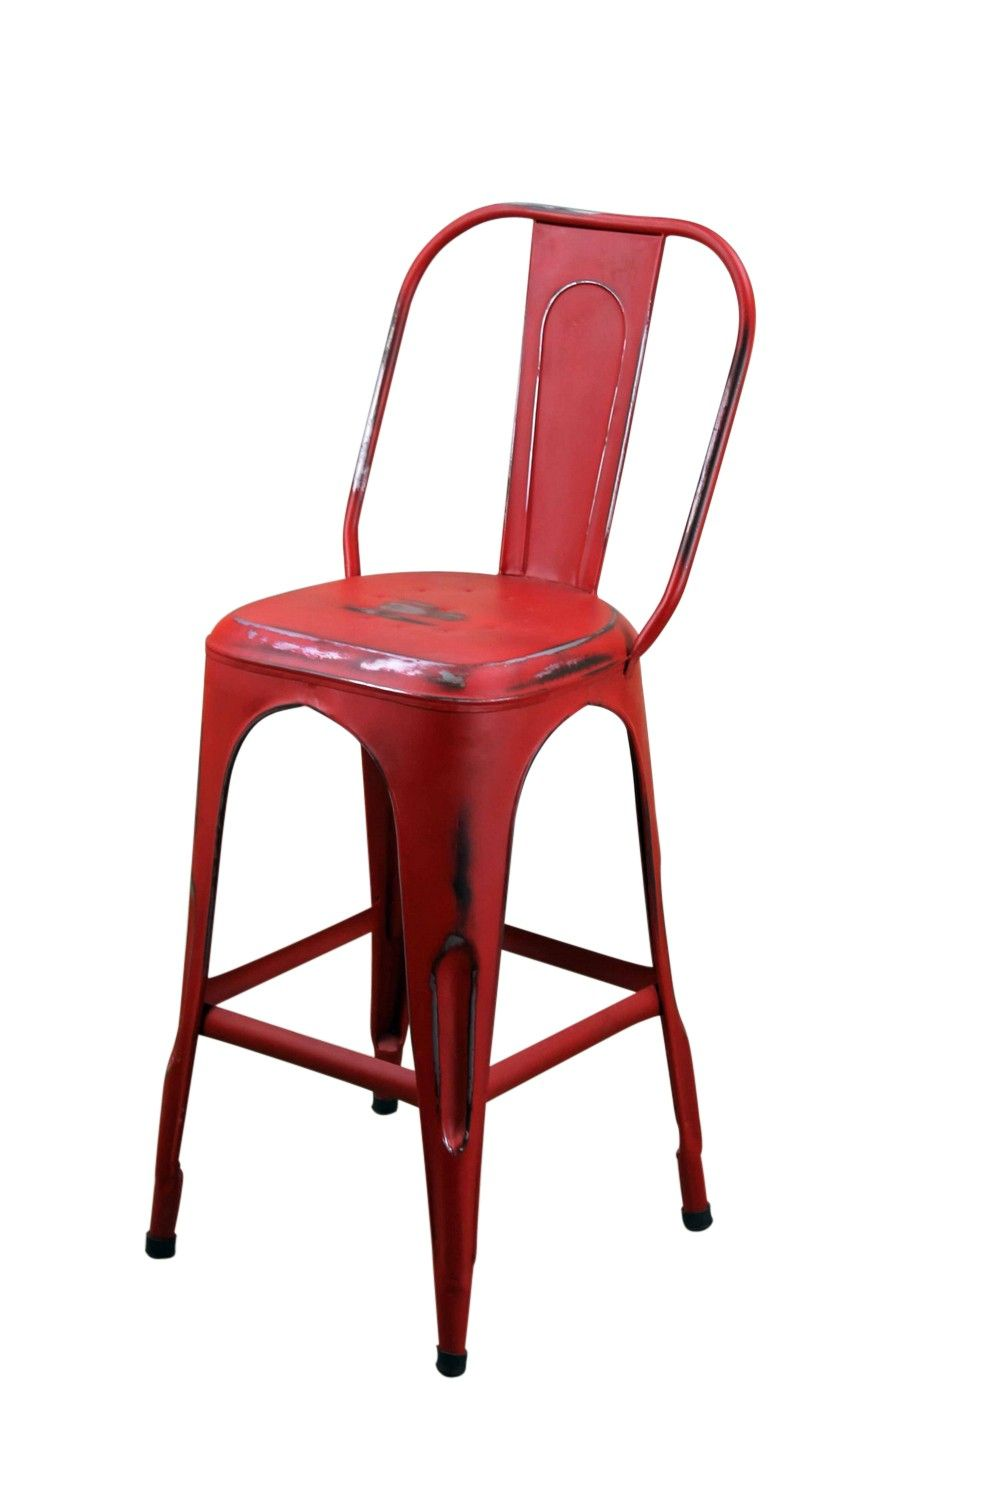 Red Metal Cafe Bar Stool